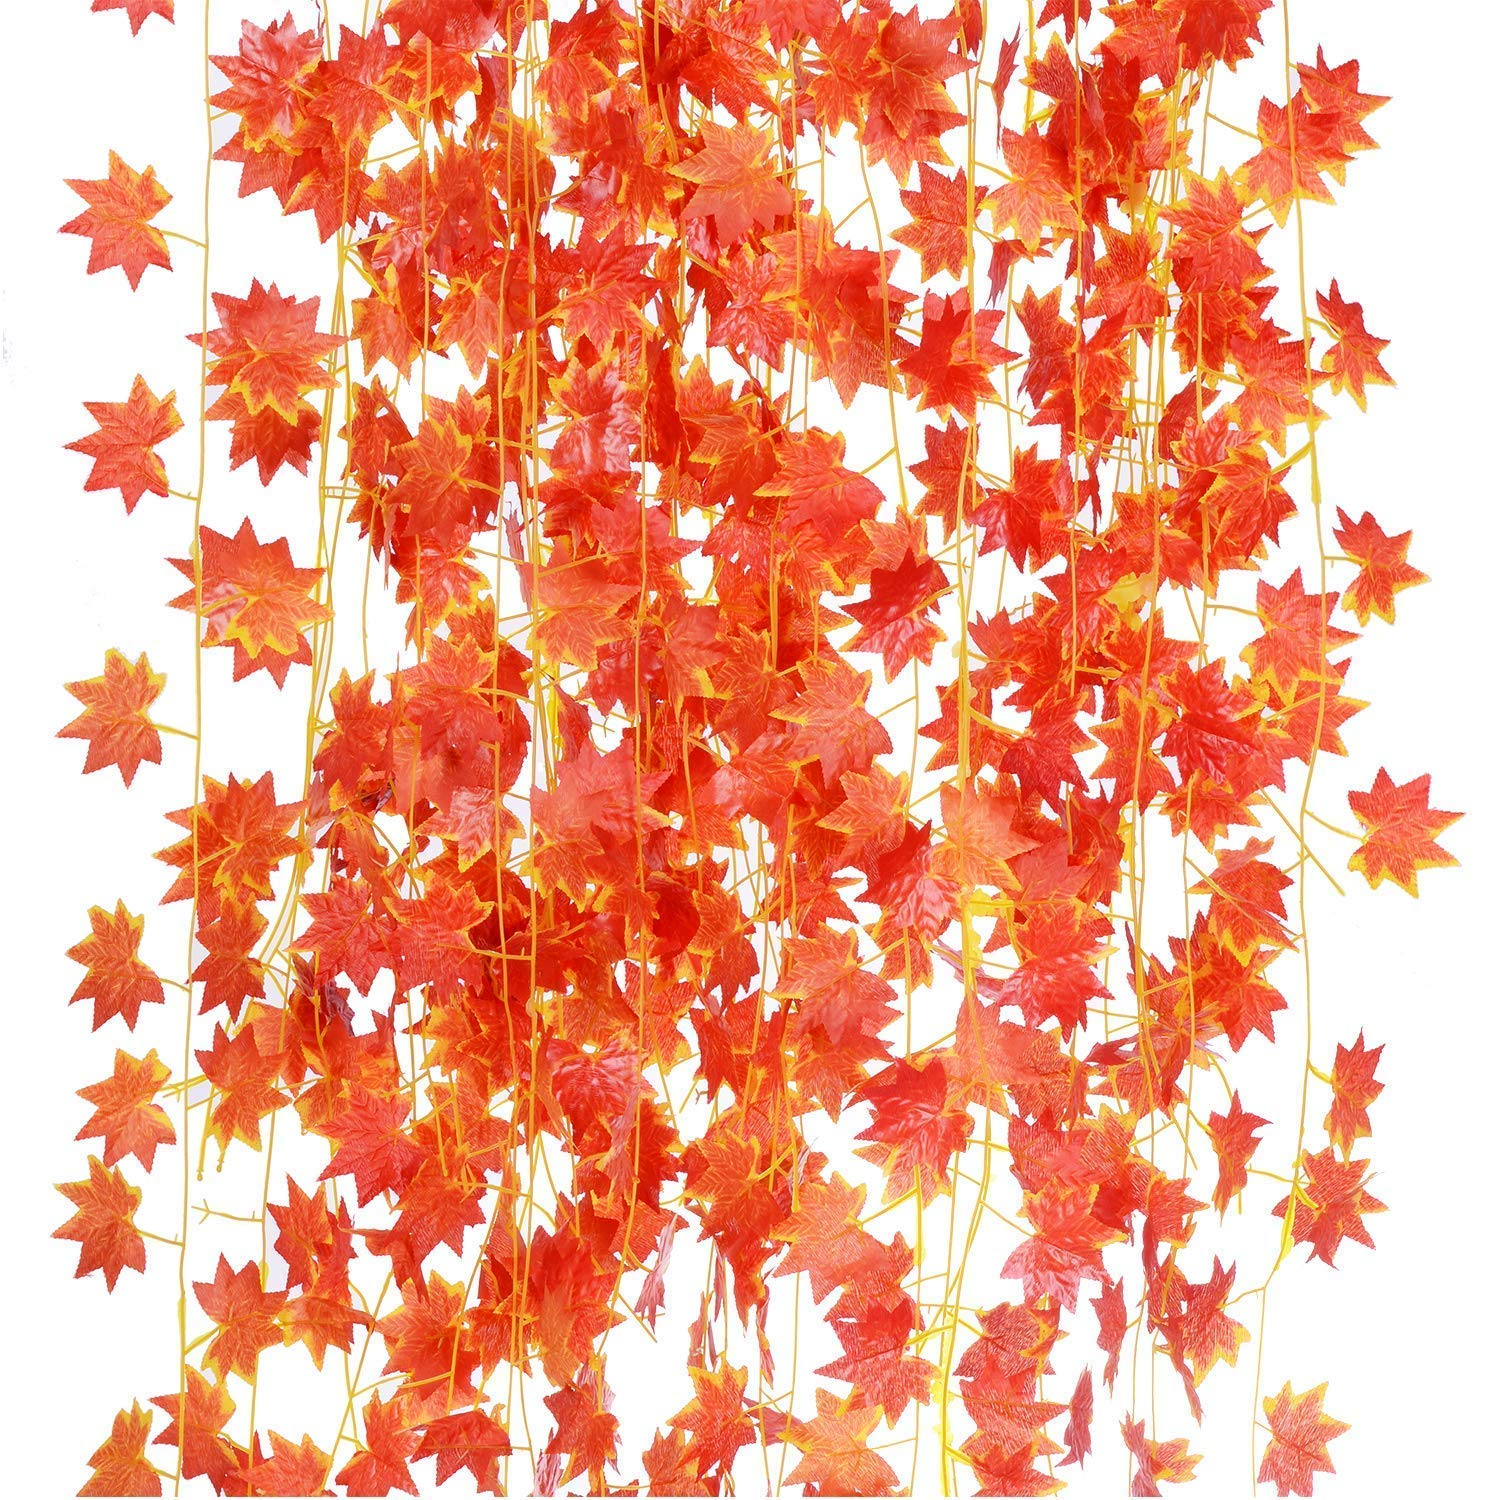 Artificial Ivy Red Maple Leaf